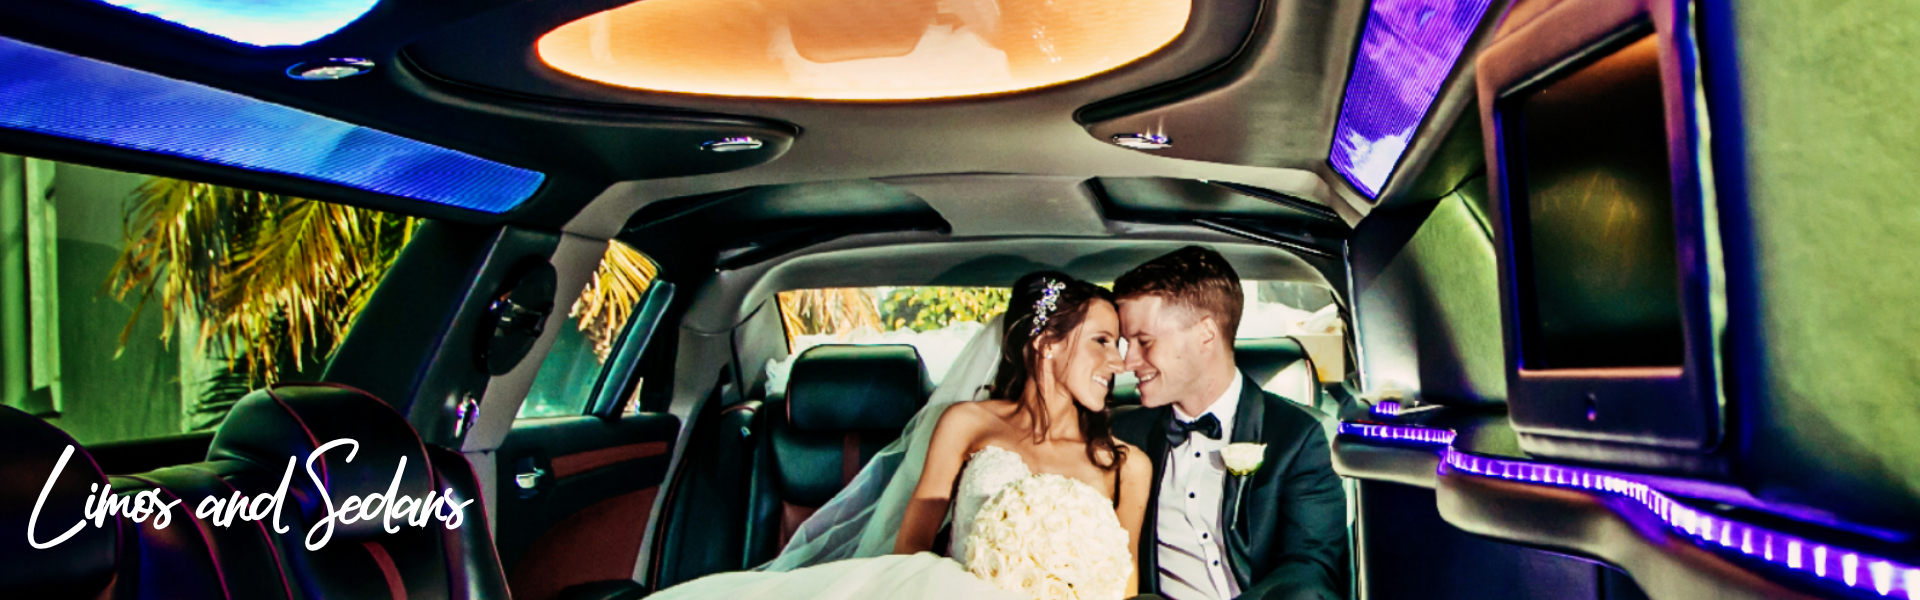 Wedding Car Fleet Header V2